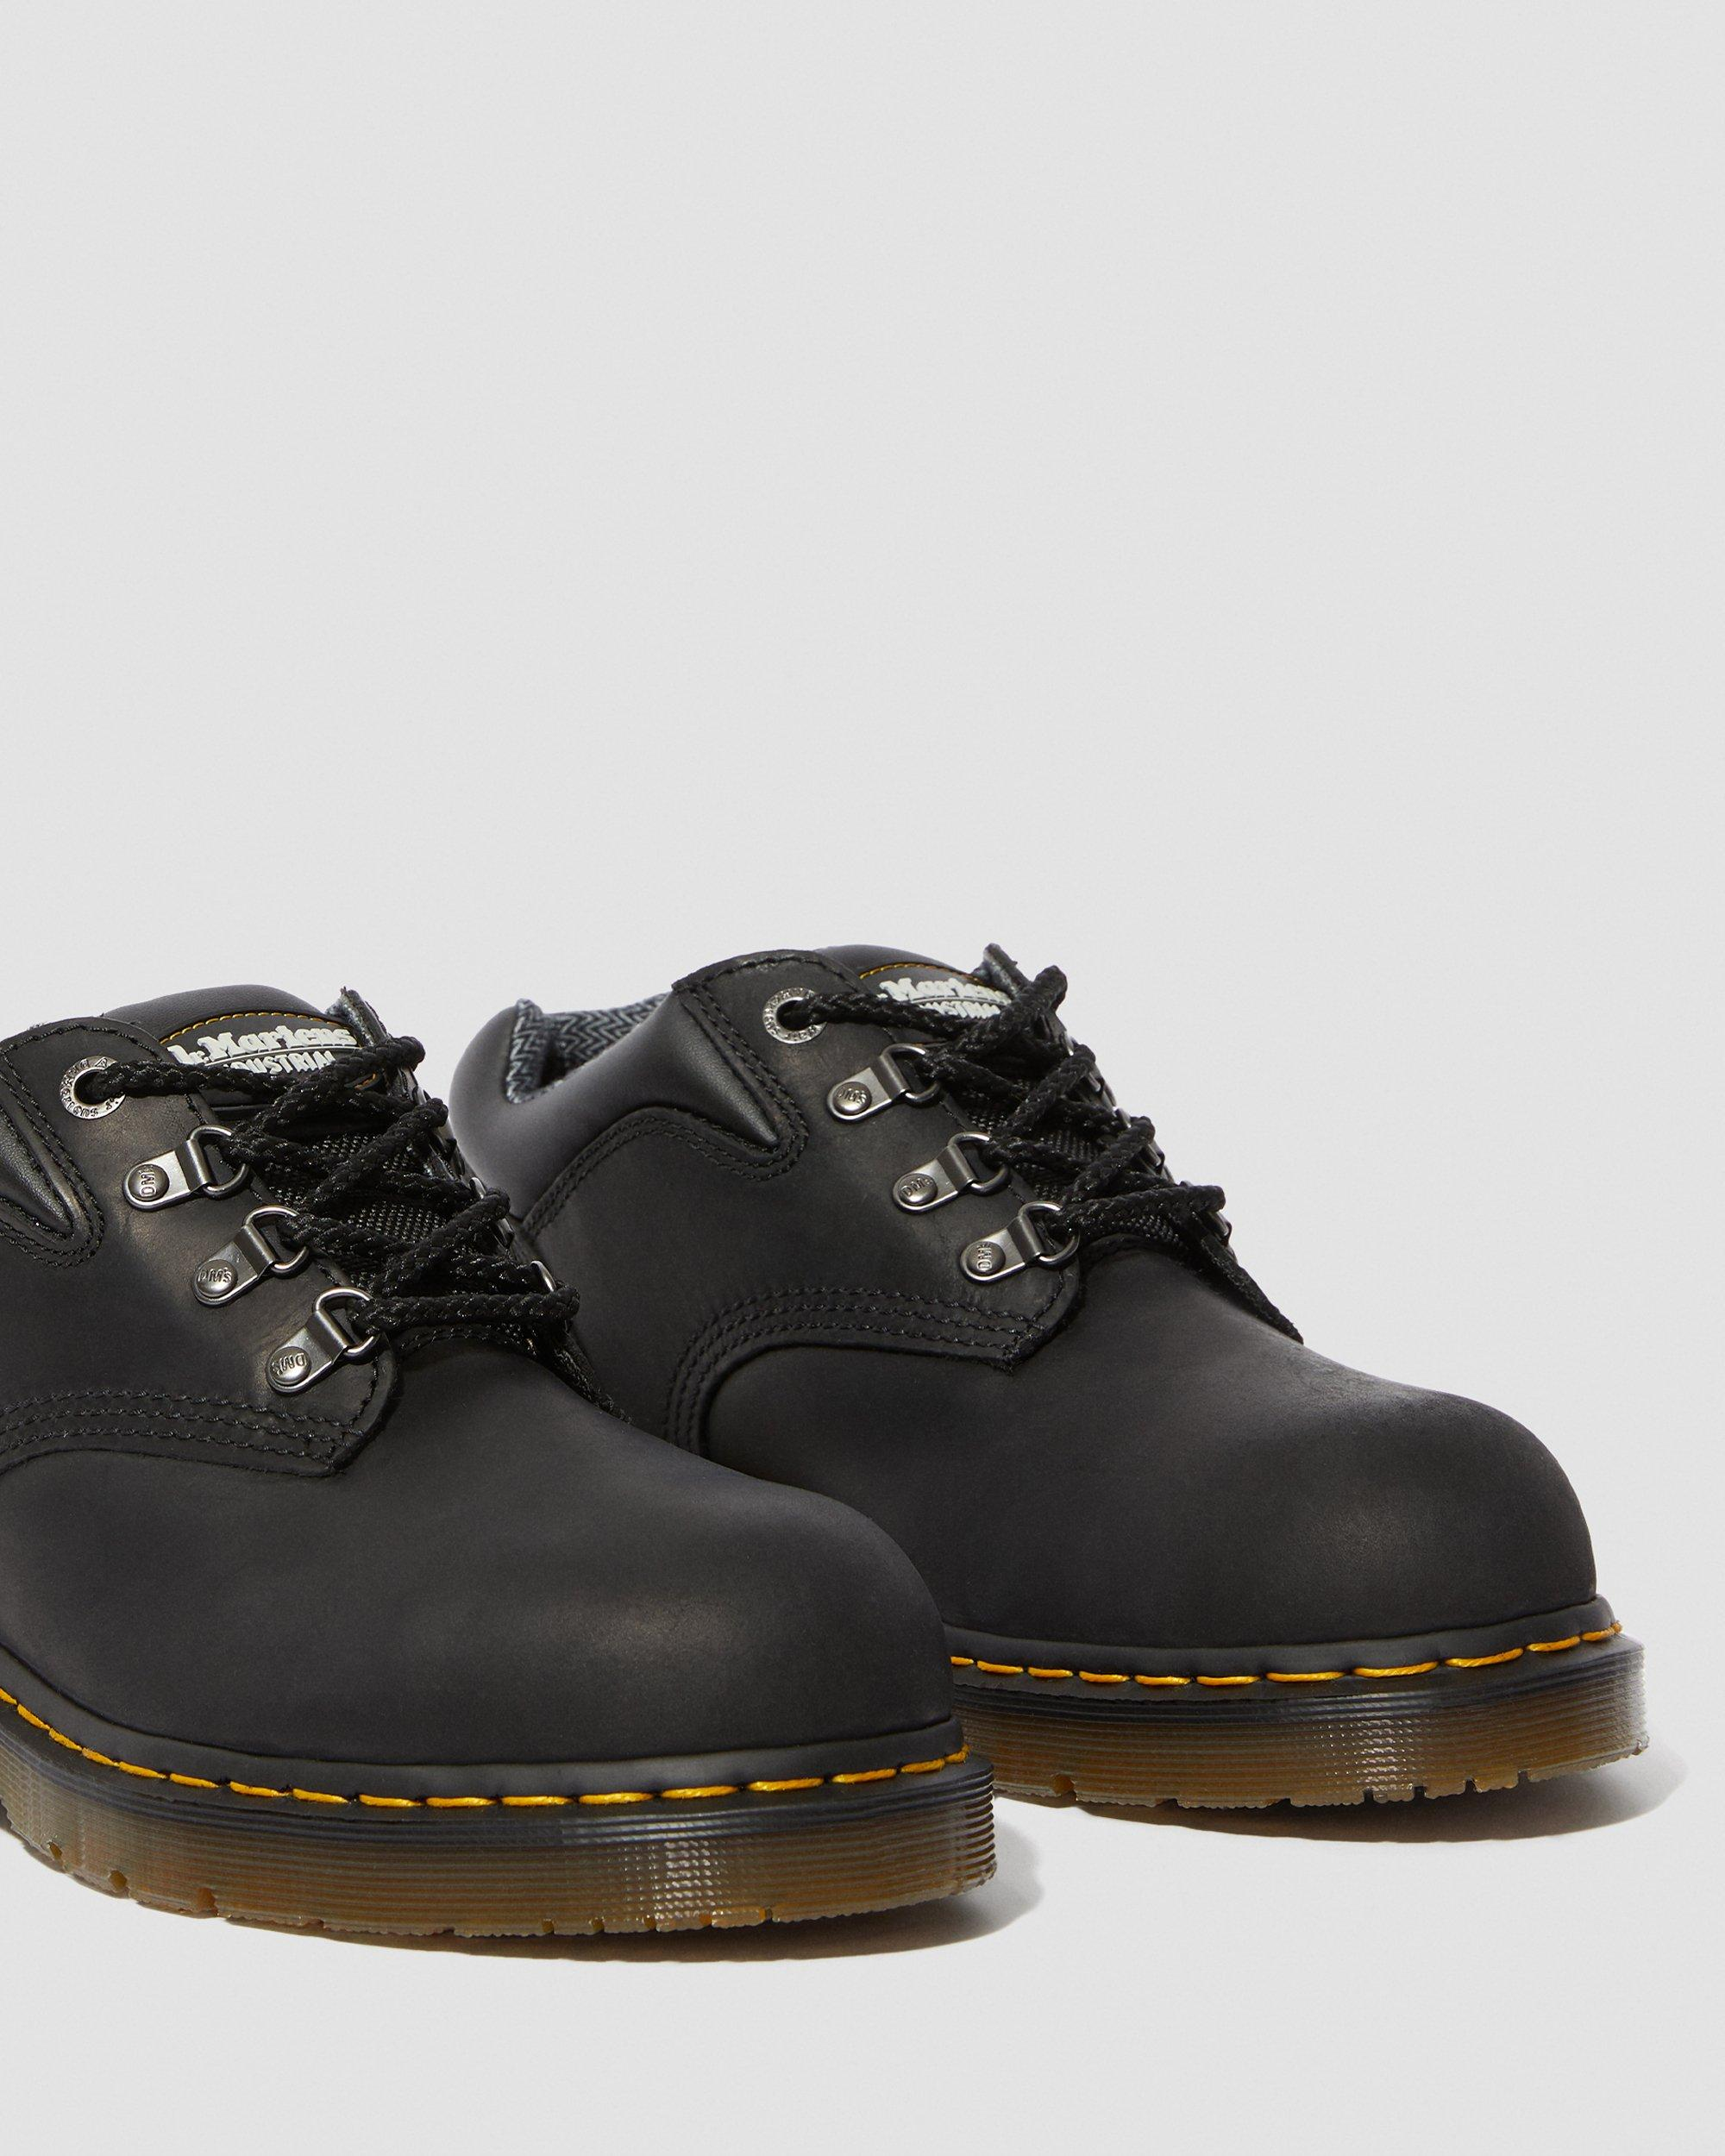 HYLOW STEEL TOE WORK BOOTS | Dr